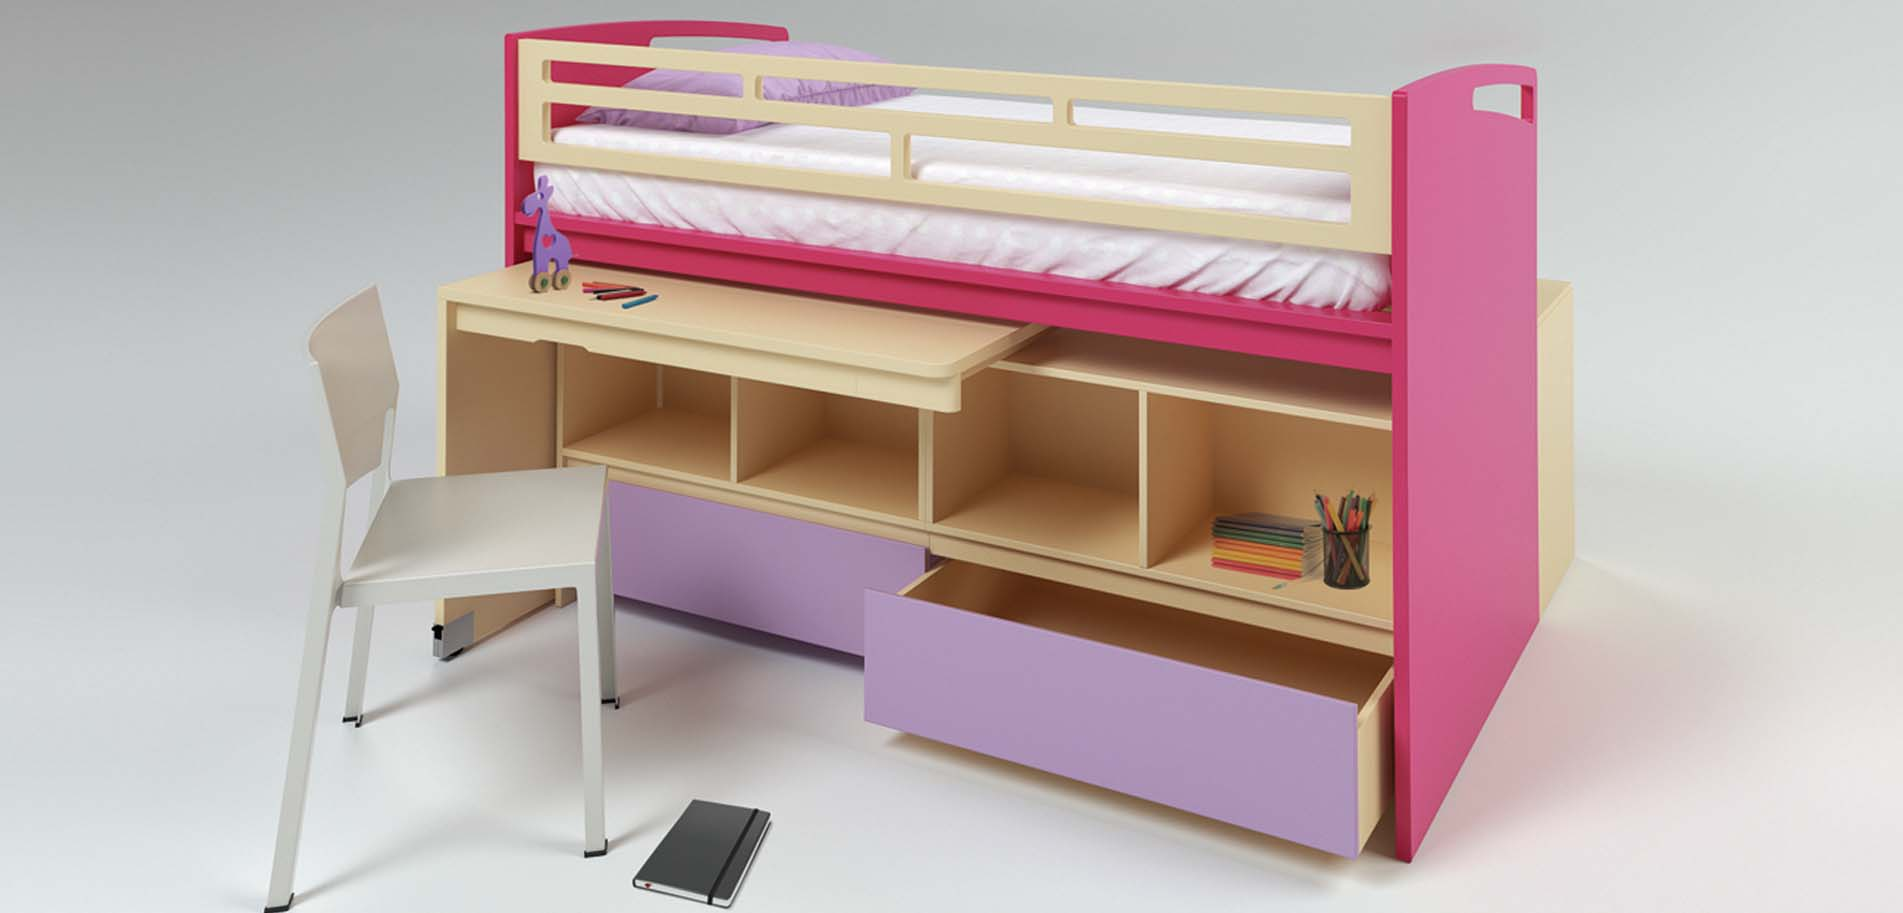 Children S Bunk Bed With Desk And Wheelchairs Drawers Epiplo